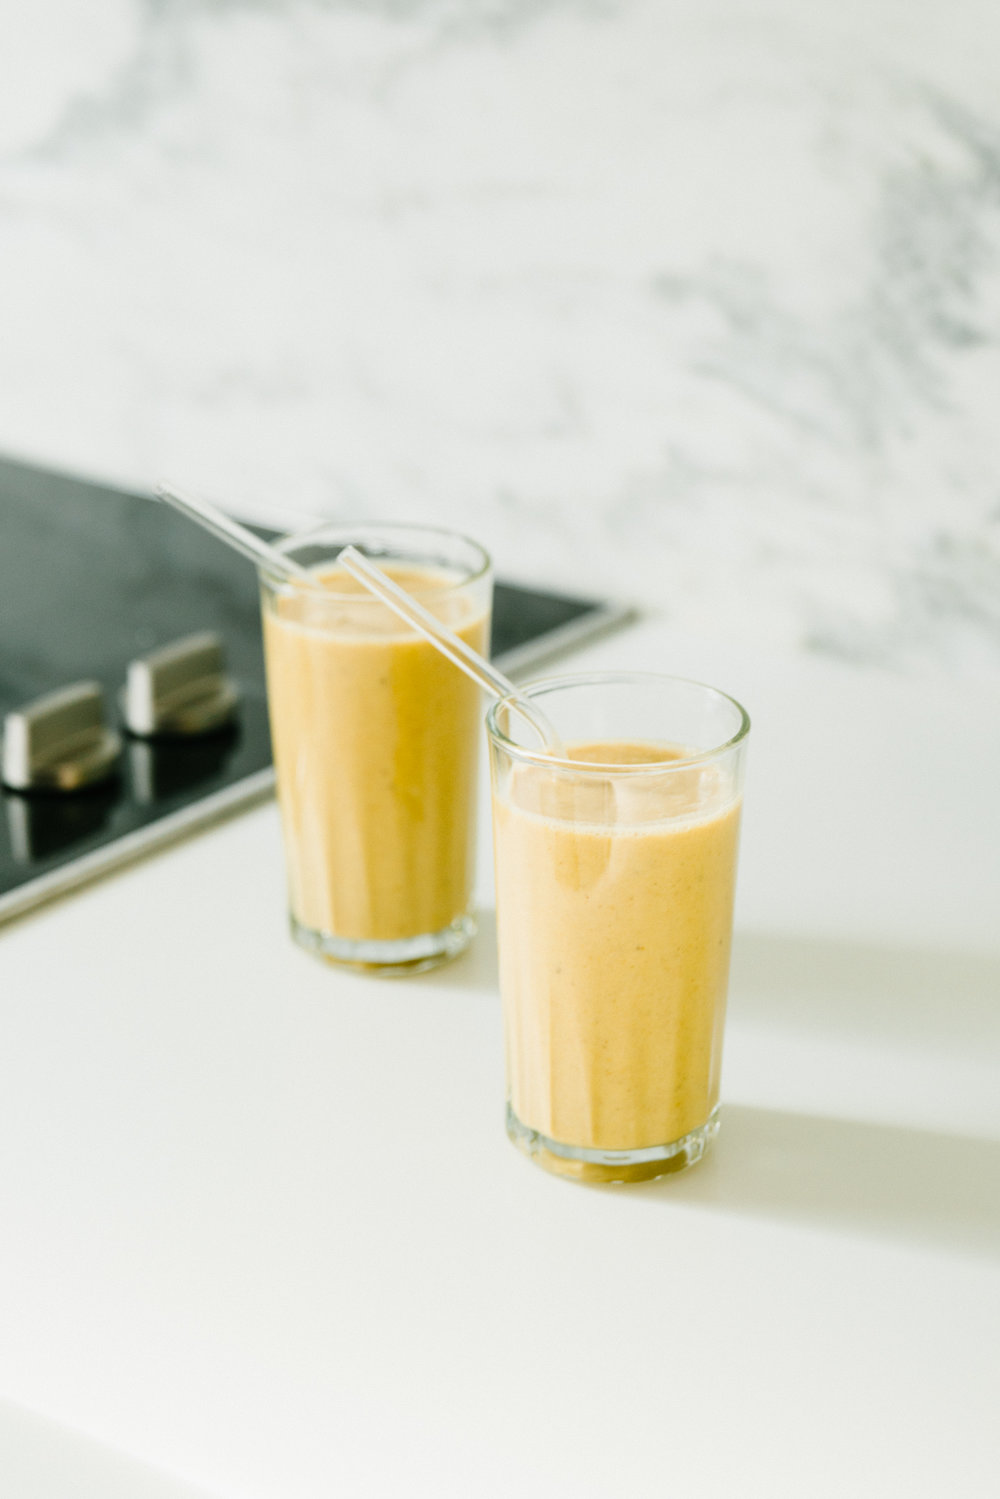 GOLDEN MILK TURMERIC SMOOTHIE